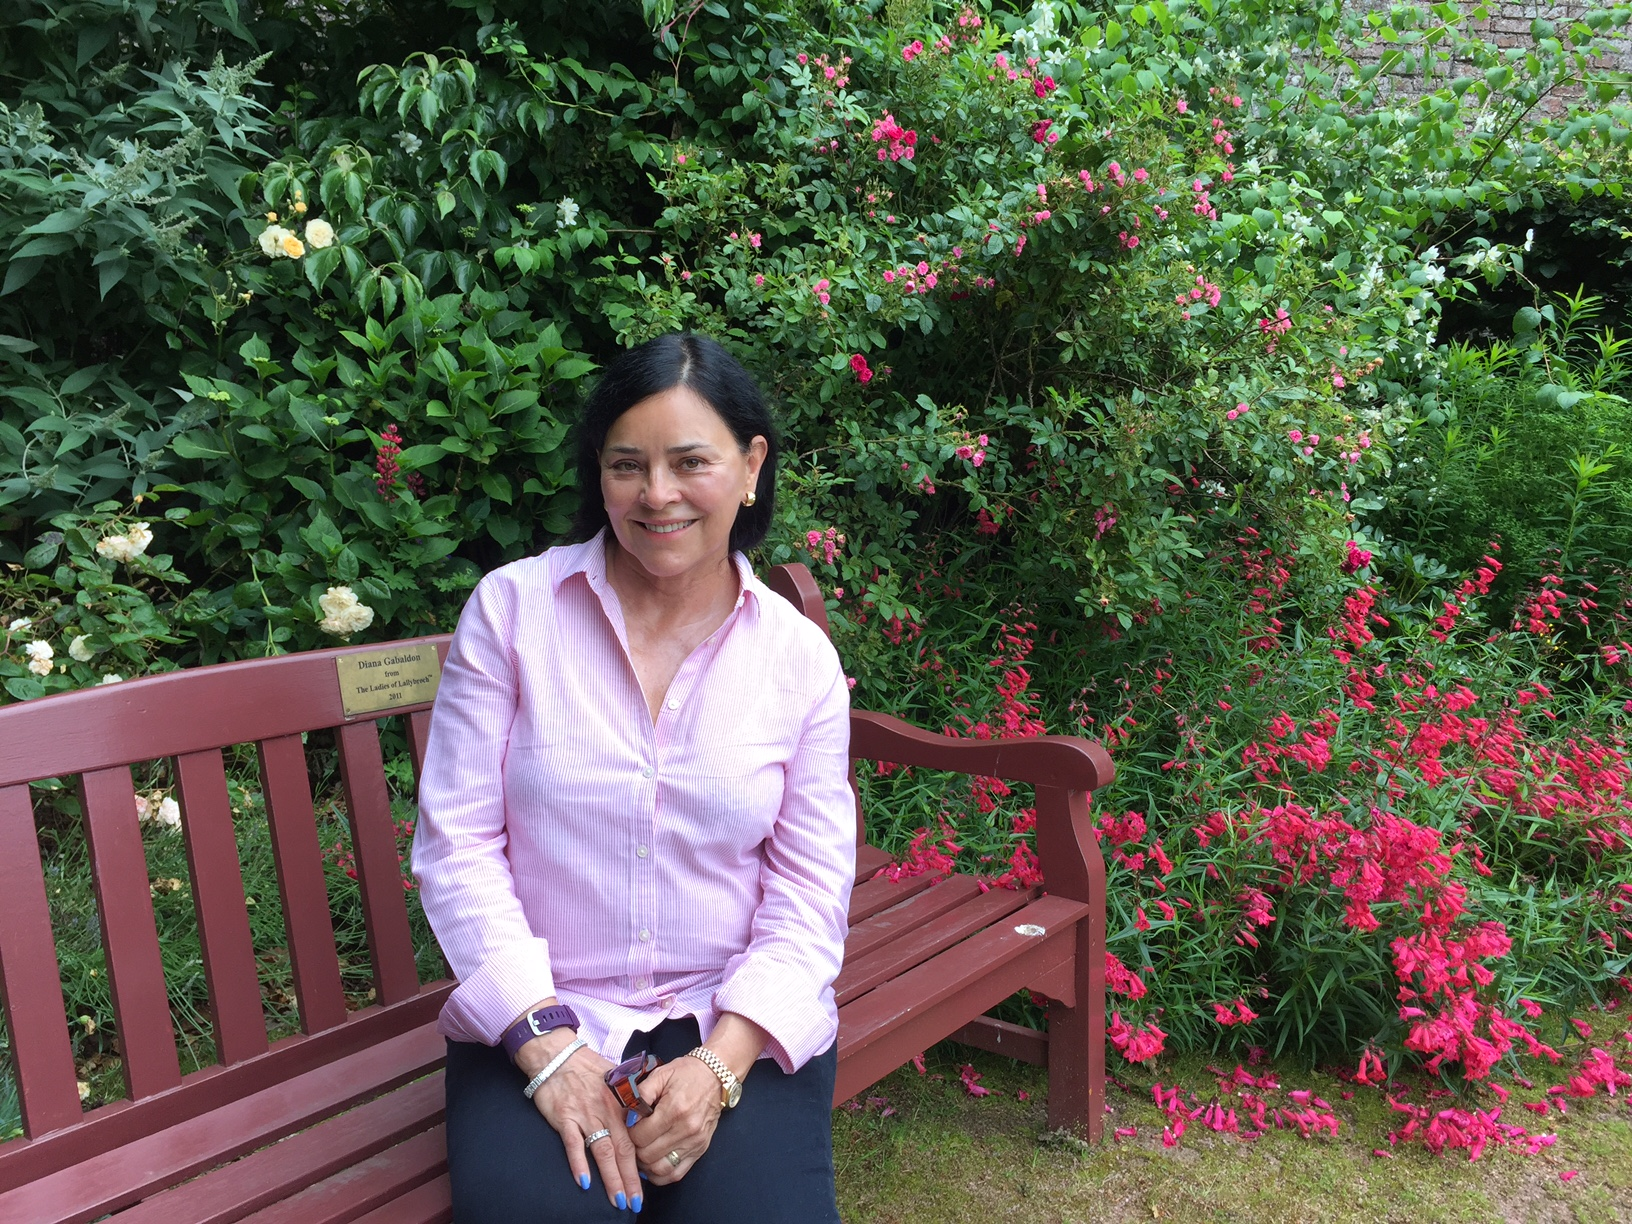 Diana Gabaldon has been recognised for the Outlander effect by VisitScotland.